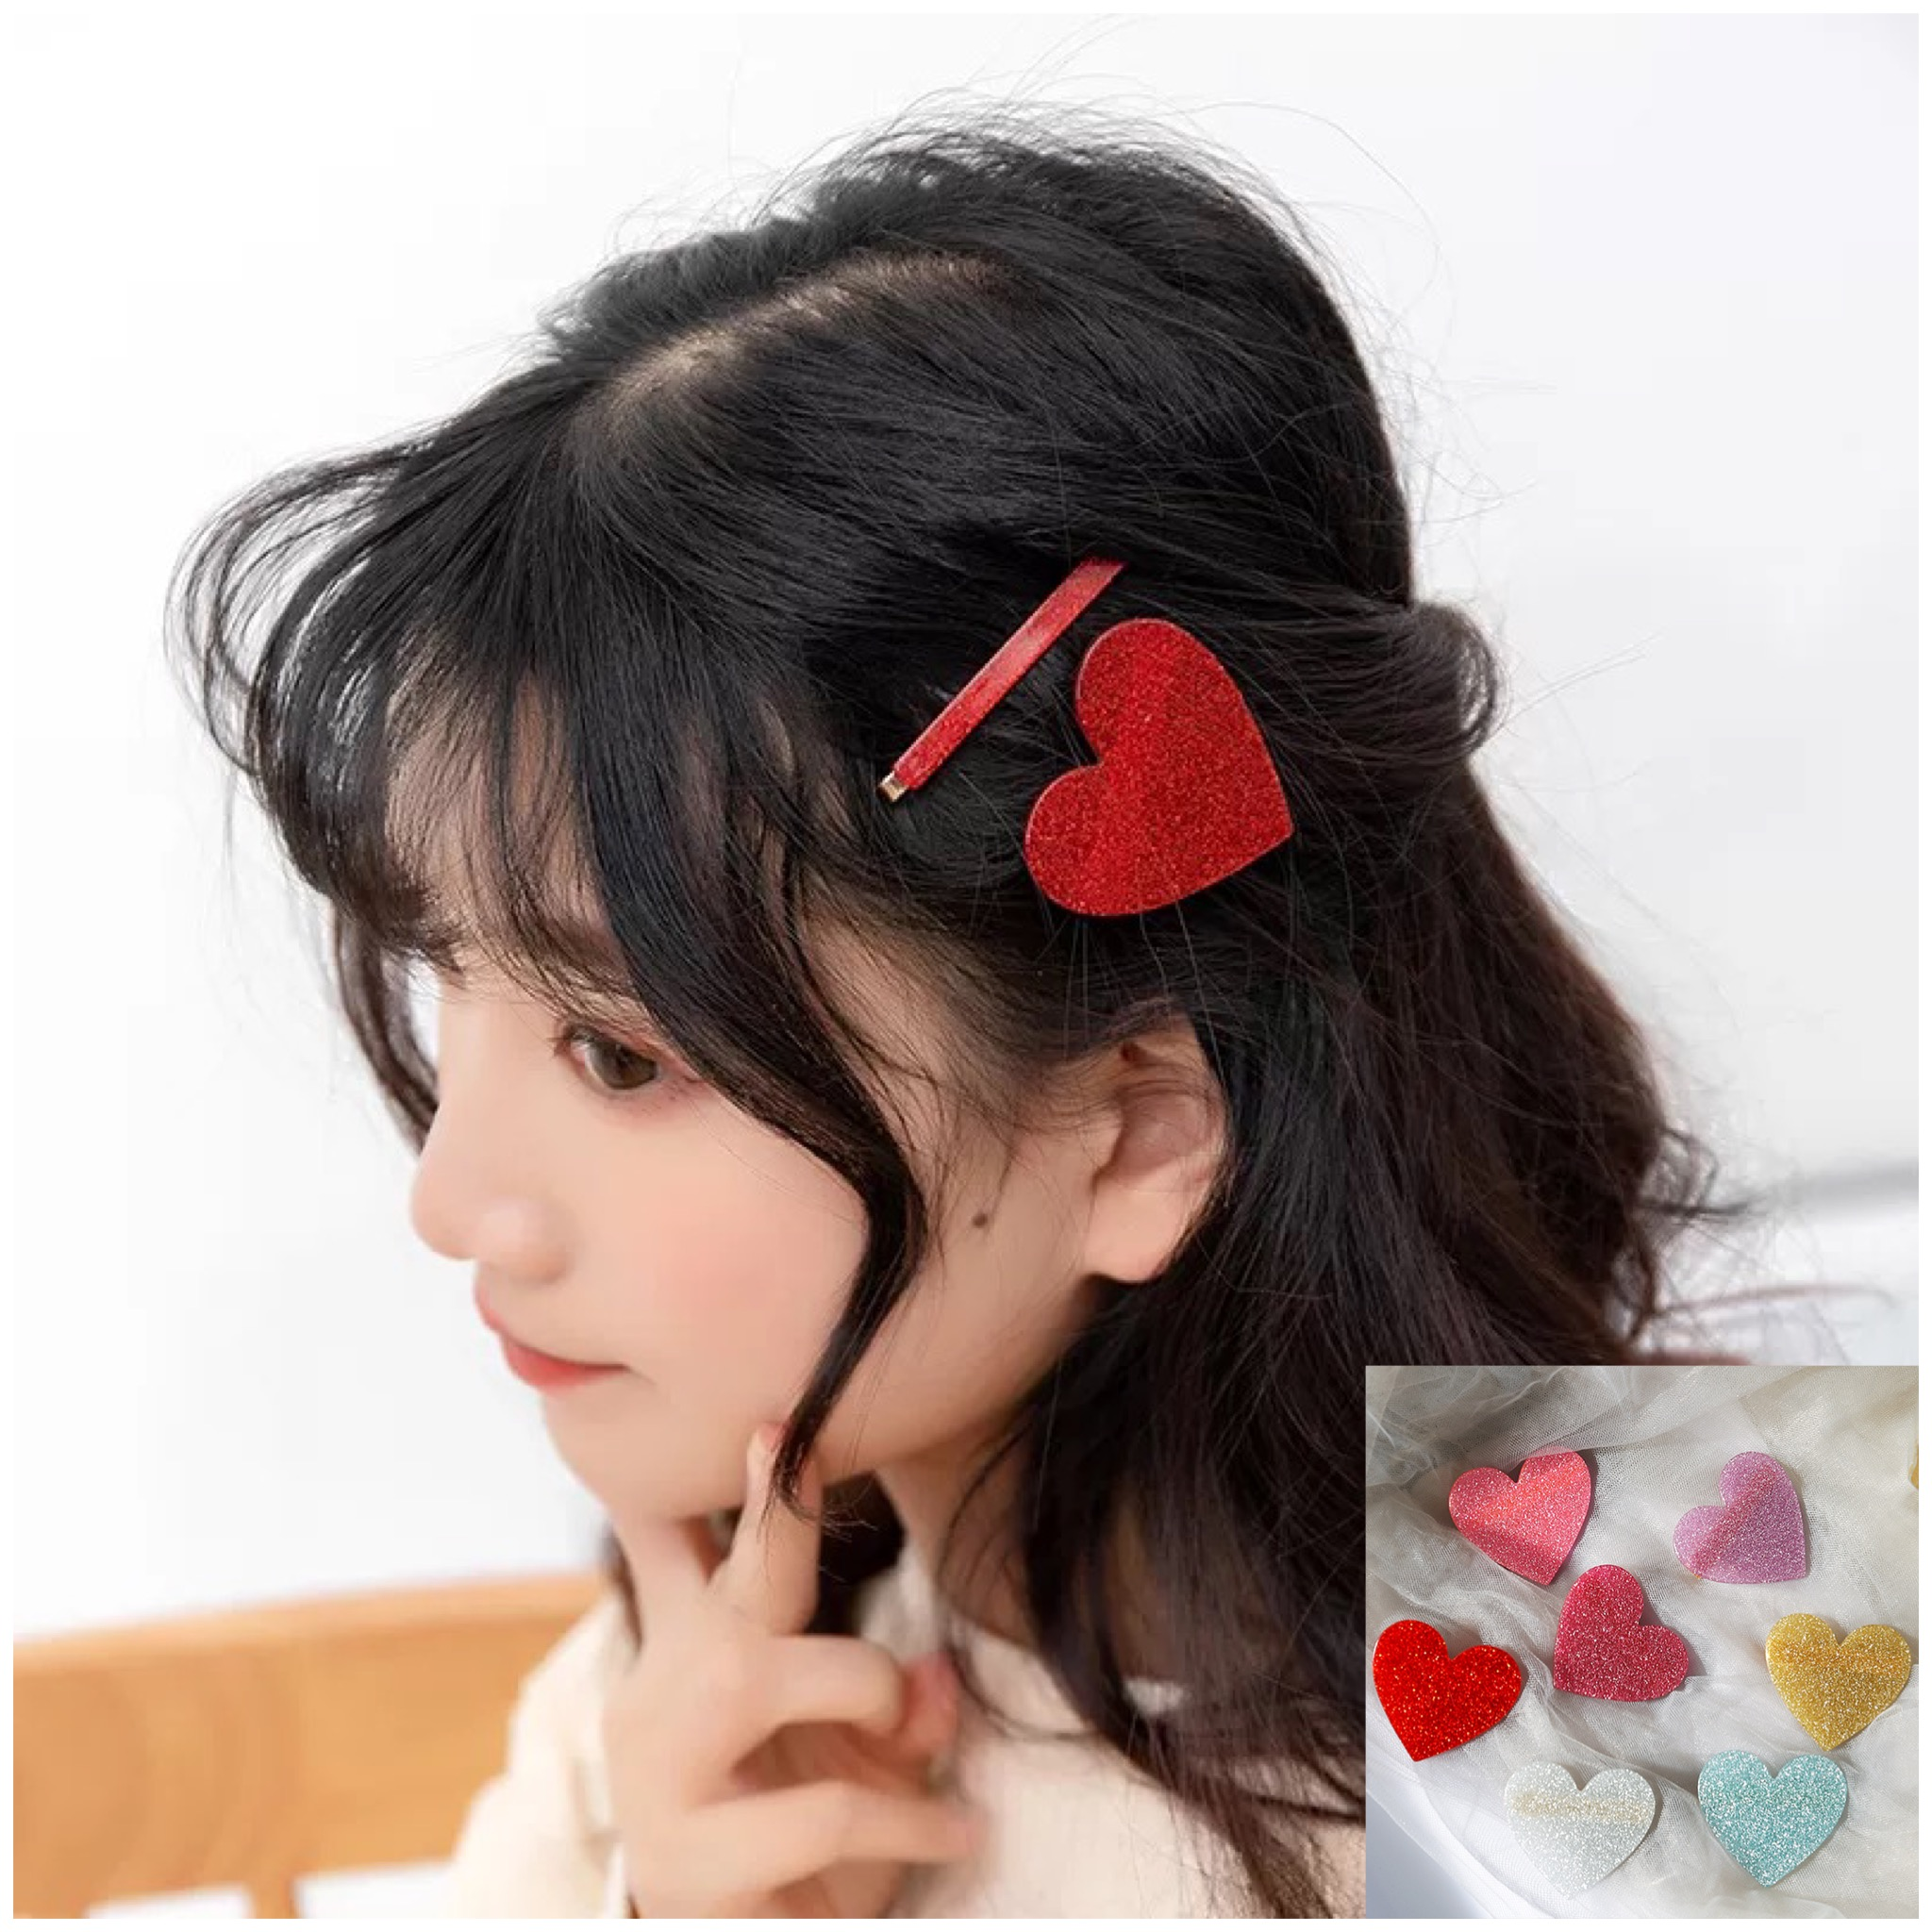 1 Pcs Fashion  Arylic Plastic Bling Bling Heart Hairclips Girls Hairpin  Hair Accessories For Women